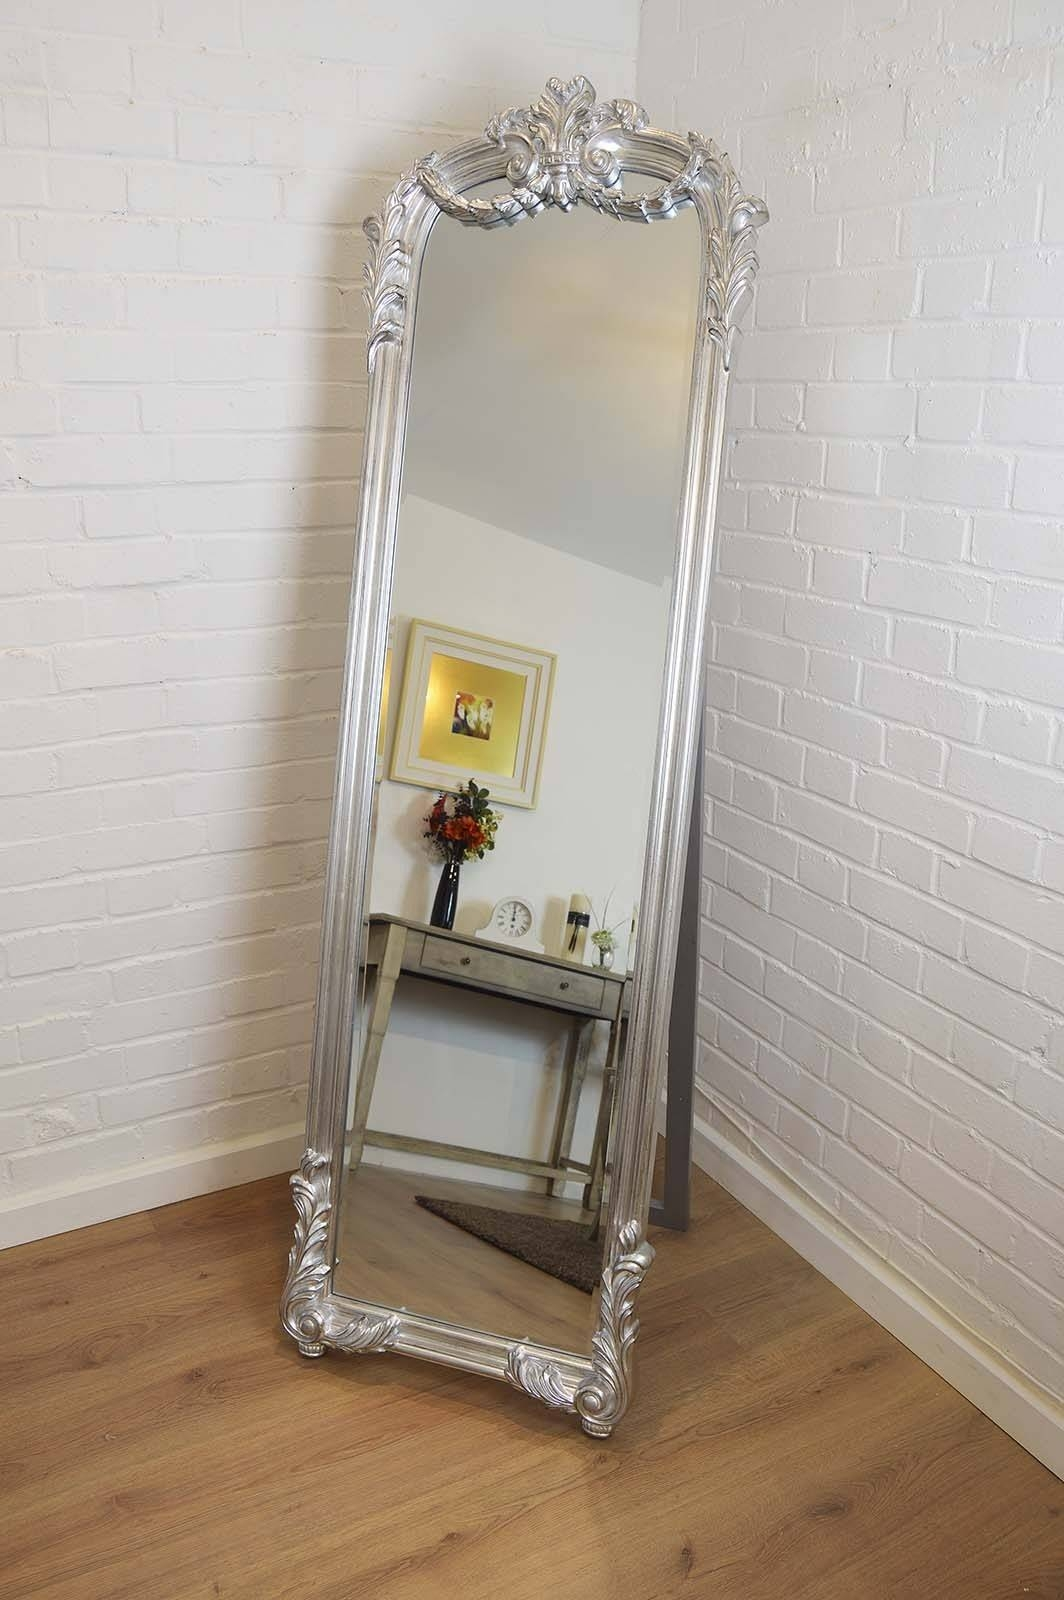 Large Free Standing Mirror 22 Awesome Exterior With Leaning Floor pertaining to Long Free Standing Mirrors (Image 18 of 25)